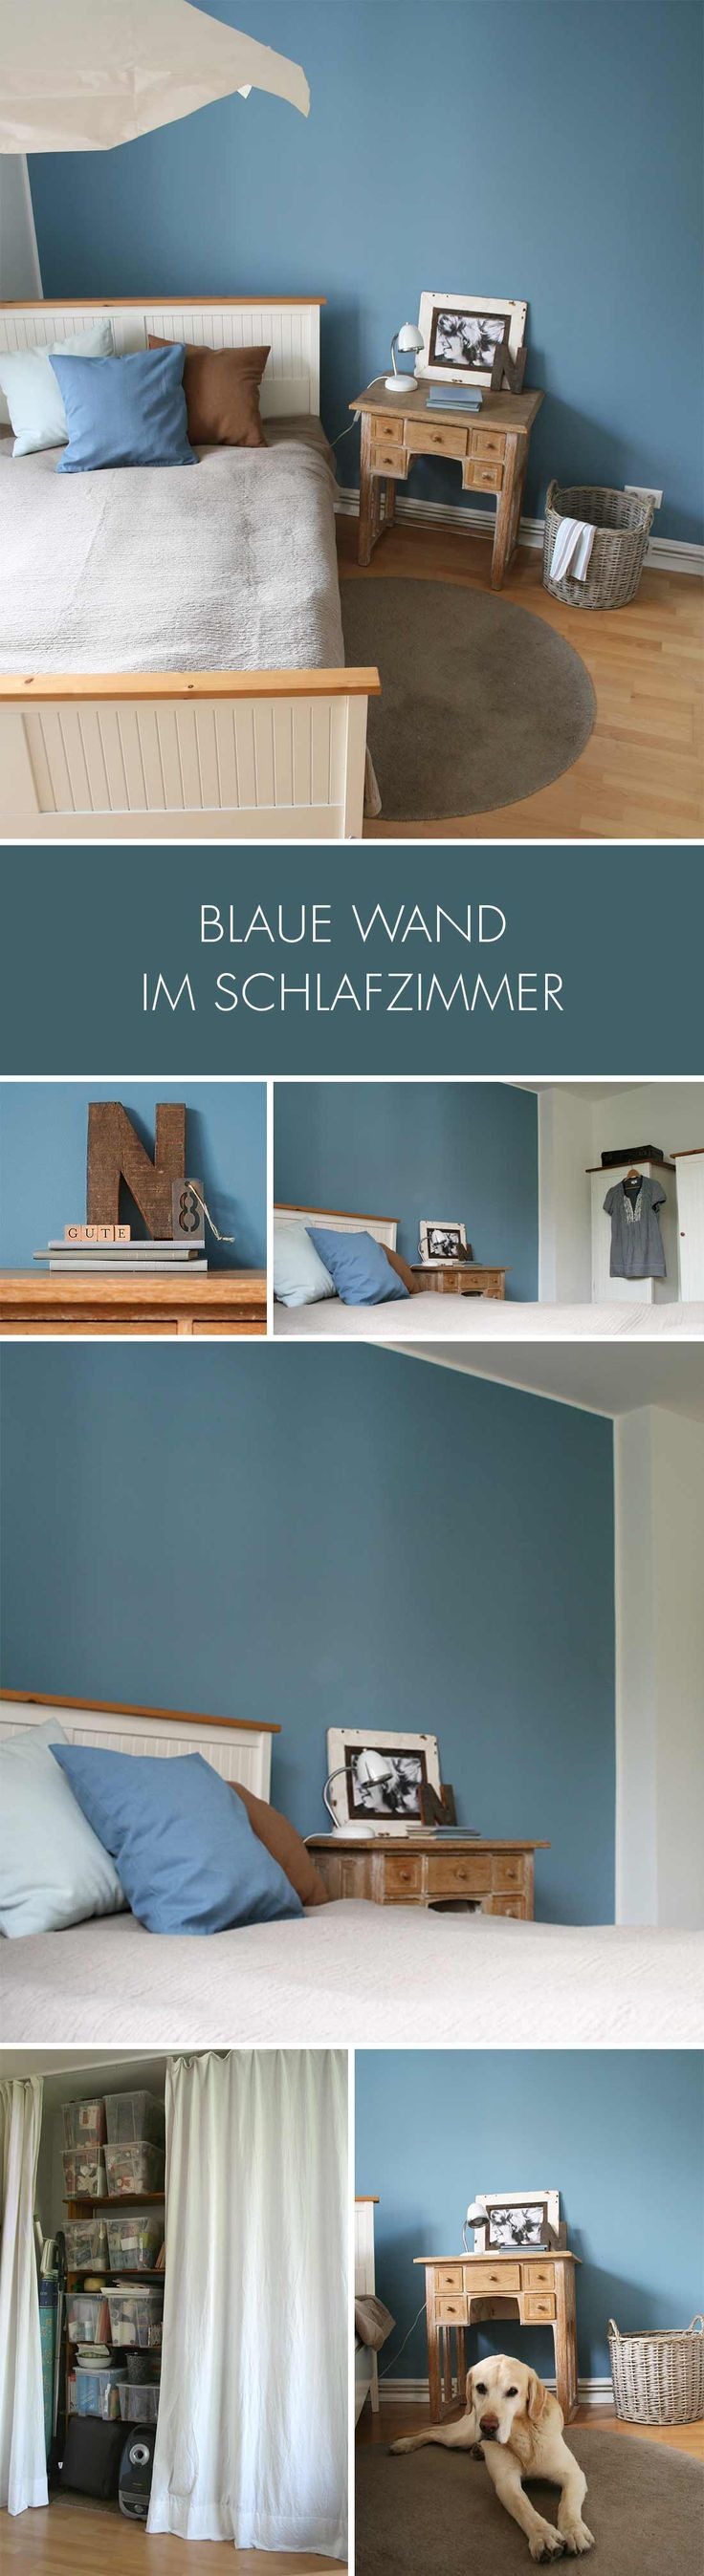 1000  ideas about farbgestaltung schlafzimmer on pinterest ...